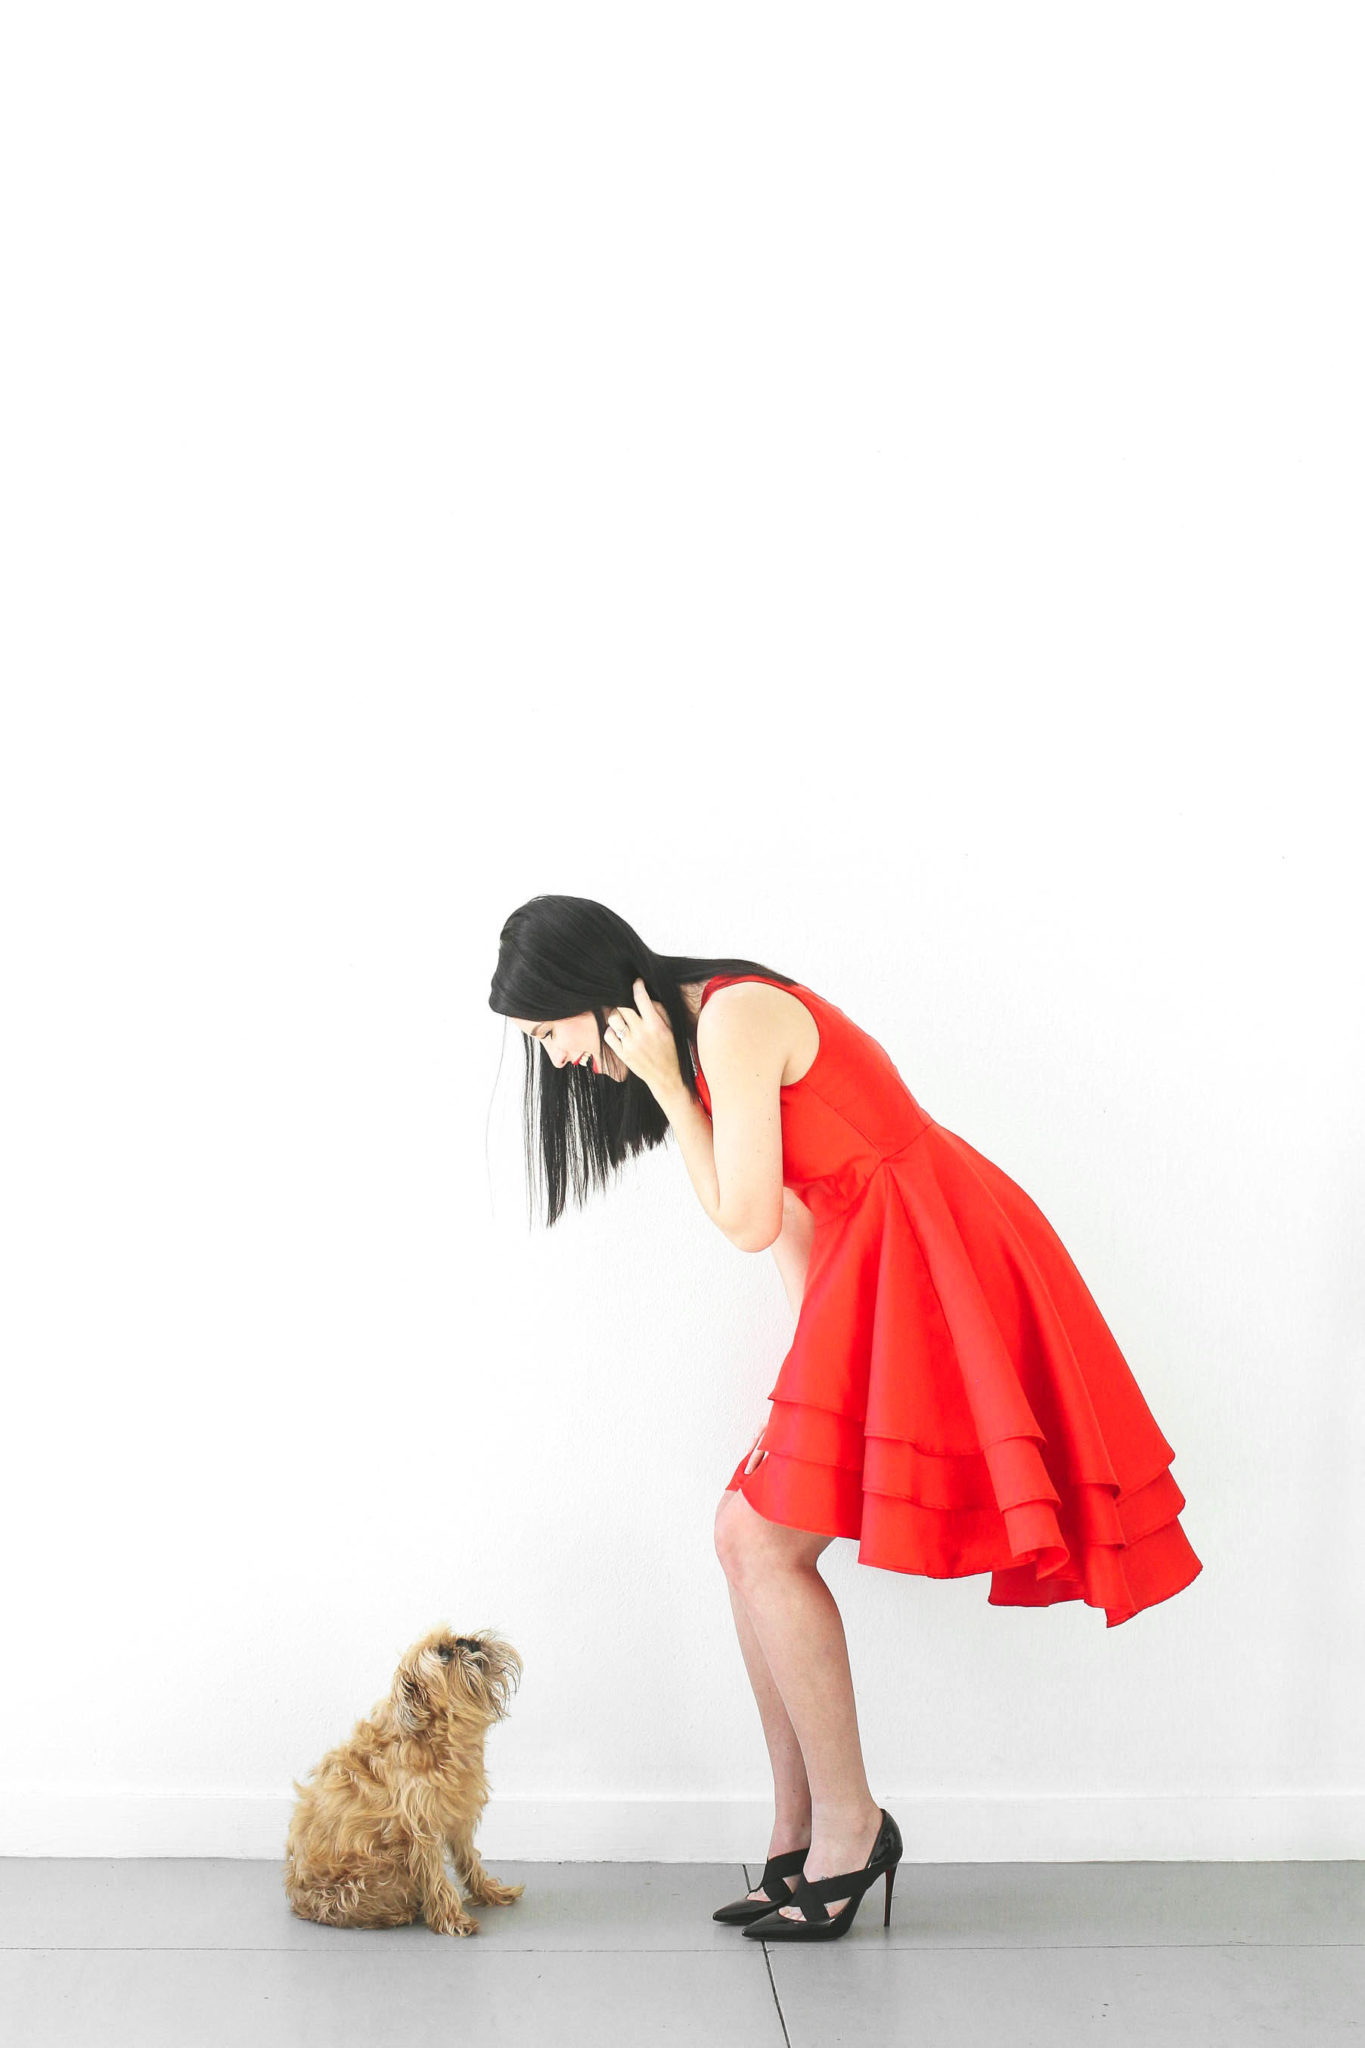 12 Must Have Little Red Dresses for Galentine's Day | classy red dresses | red dress outfit | valentine's day outfit | Valentine's Day dress || Dressed to Kill #reddress #valentinedress #valentineoutfit | Little Red Dresses for Galentine's Day by top US fashion blog, Dressed to Kill: image of a woman looking at a small dog and wearing a Jill Jill Stuart red dress, Kelly Wynne bag and Steve Madden shoes